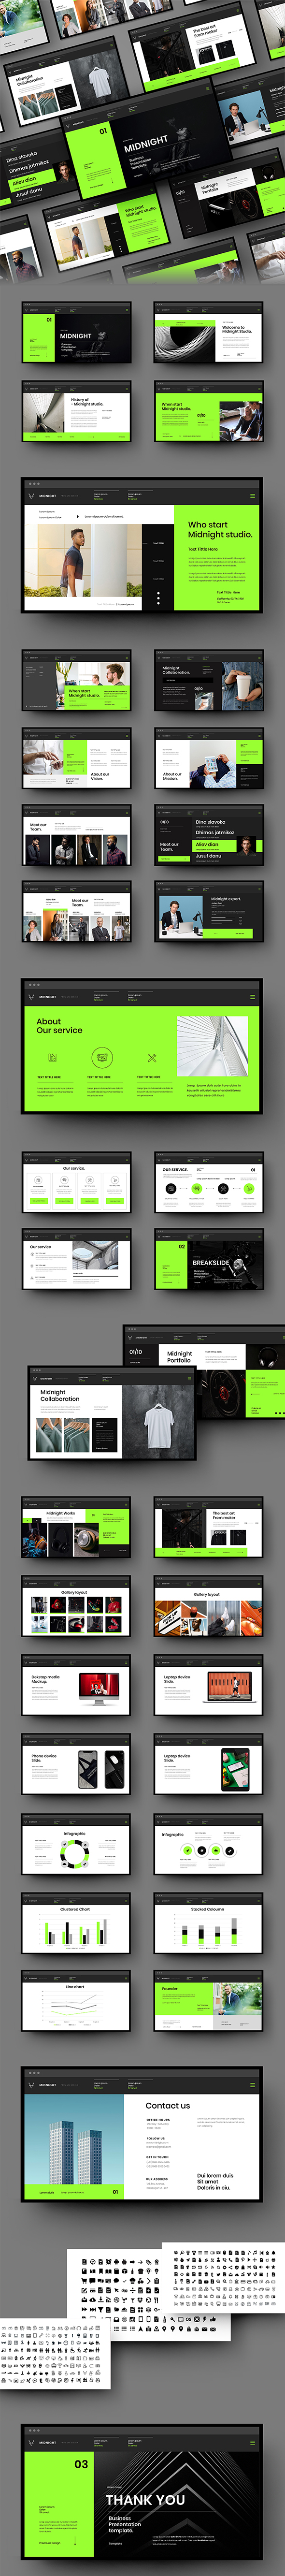 Midnight – Business PowerPoint Template